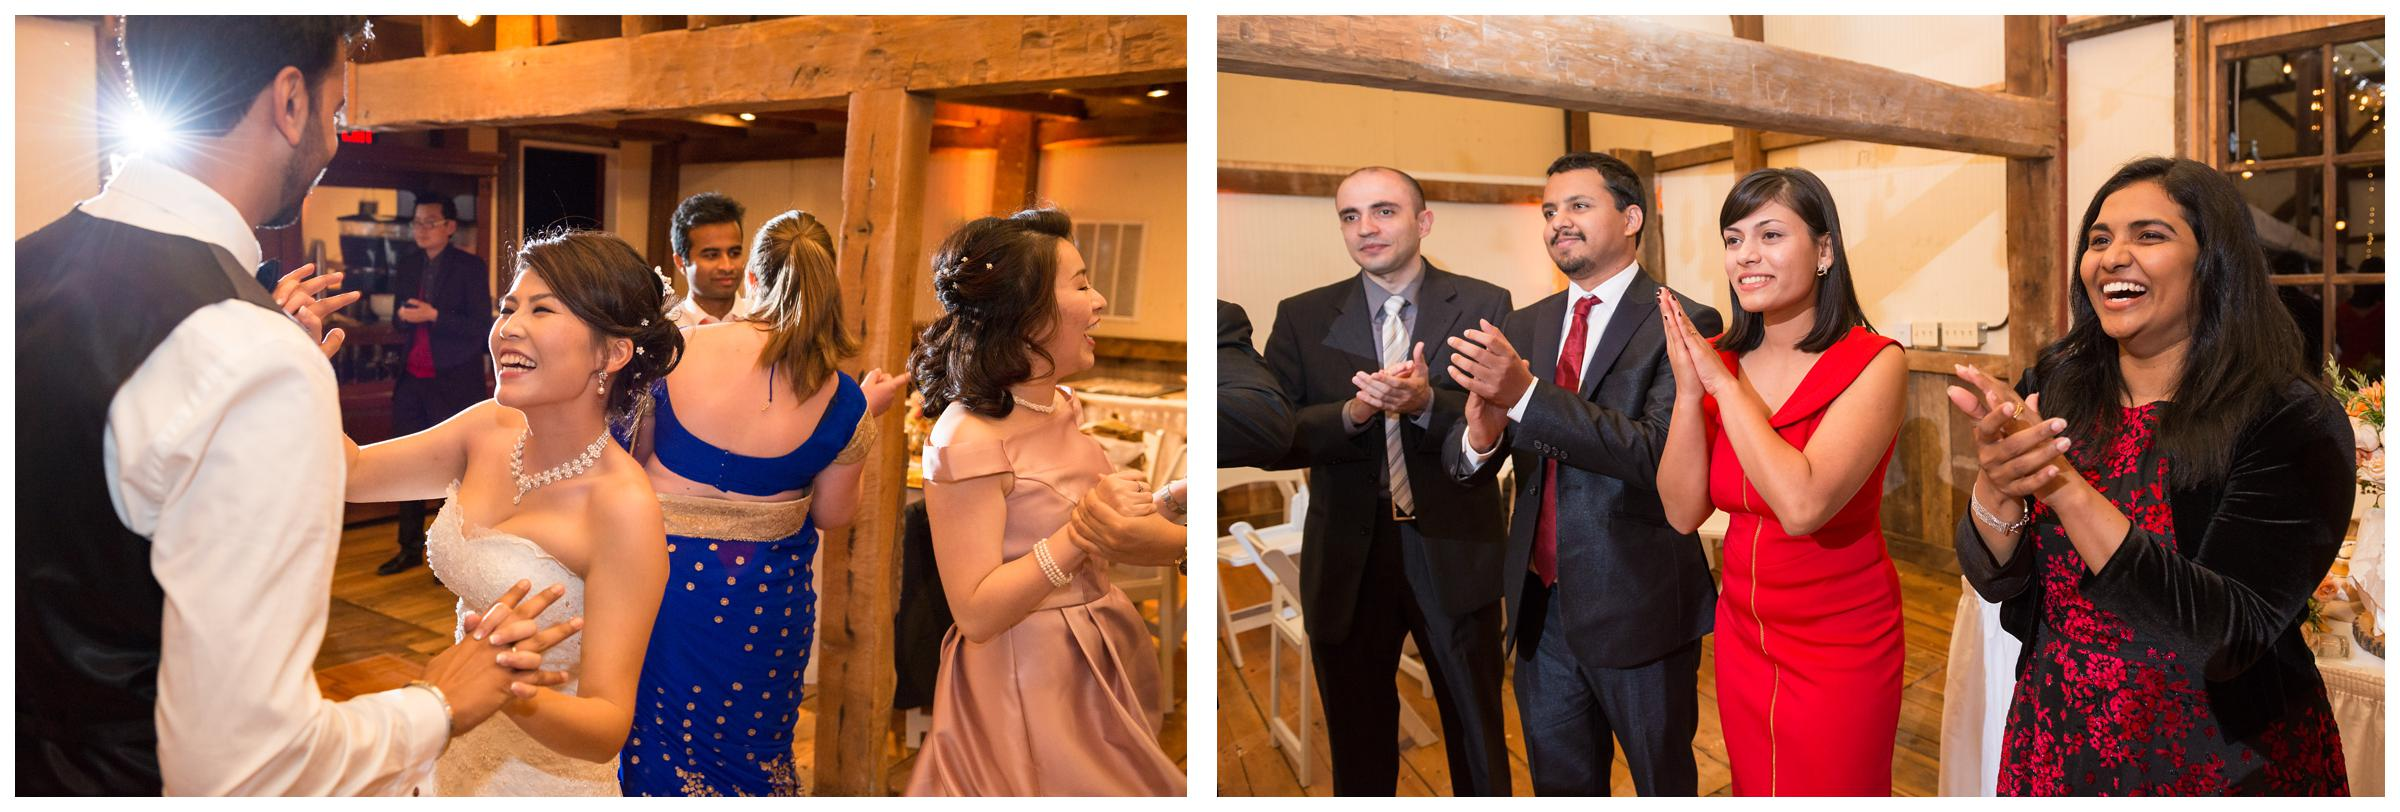 Bride and groom dancing during their rustic barn wedding reception in Northern Virginia.